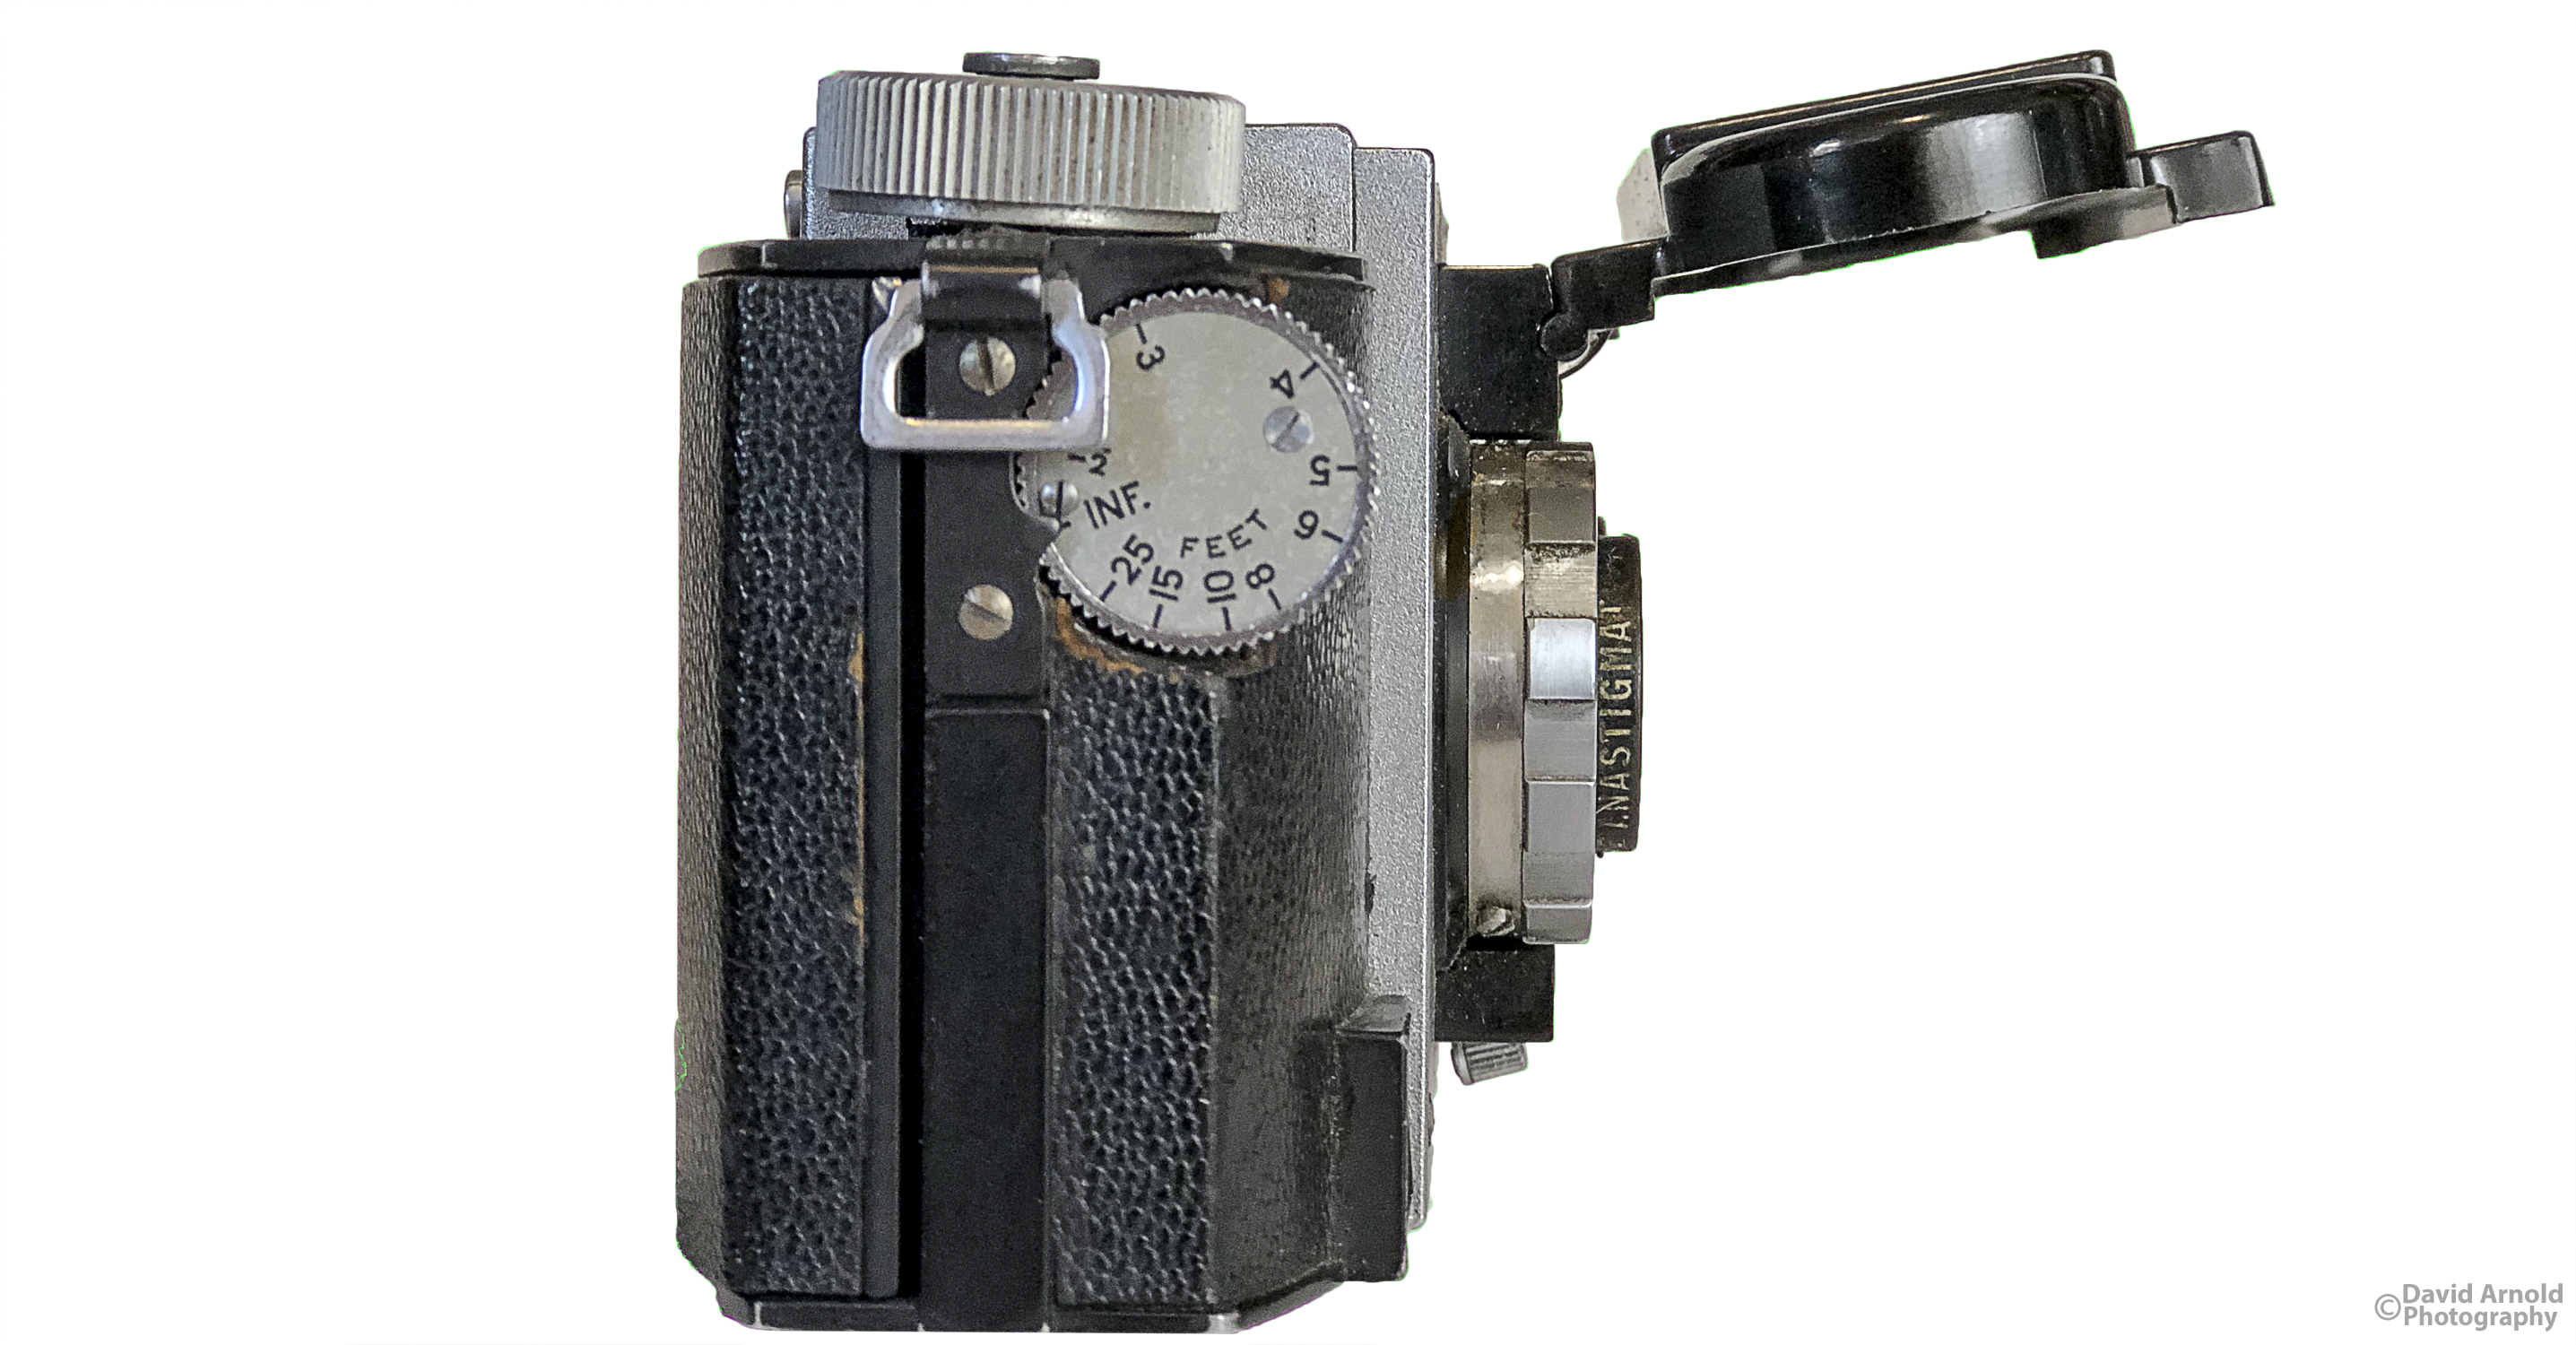 Stereo Realist Focusing Scale